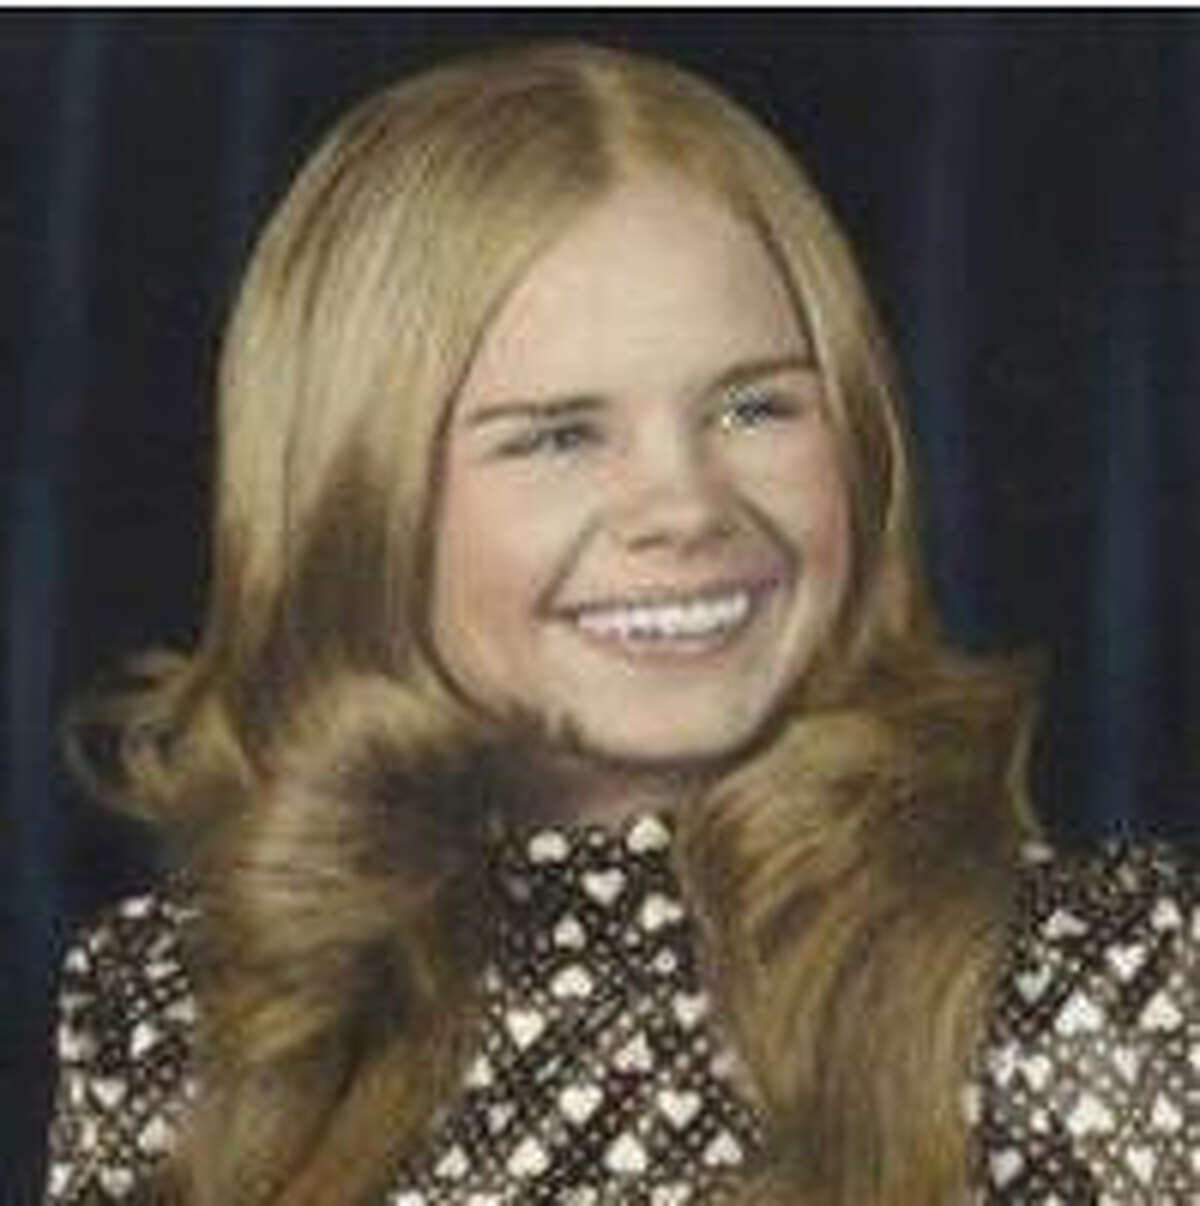 Open case Carla Walker, 17, was with her boyfriend in February 1974 at a Fort Worth bowling alley when someone attacked the boyfriend, then kidnapped Walker. She was found three days later in a culvert.